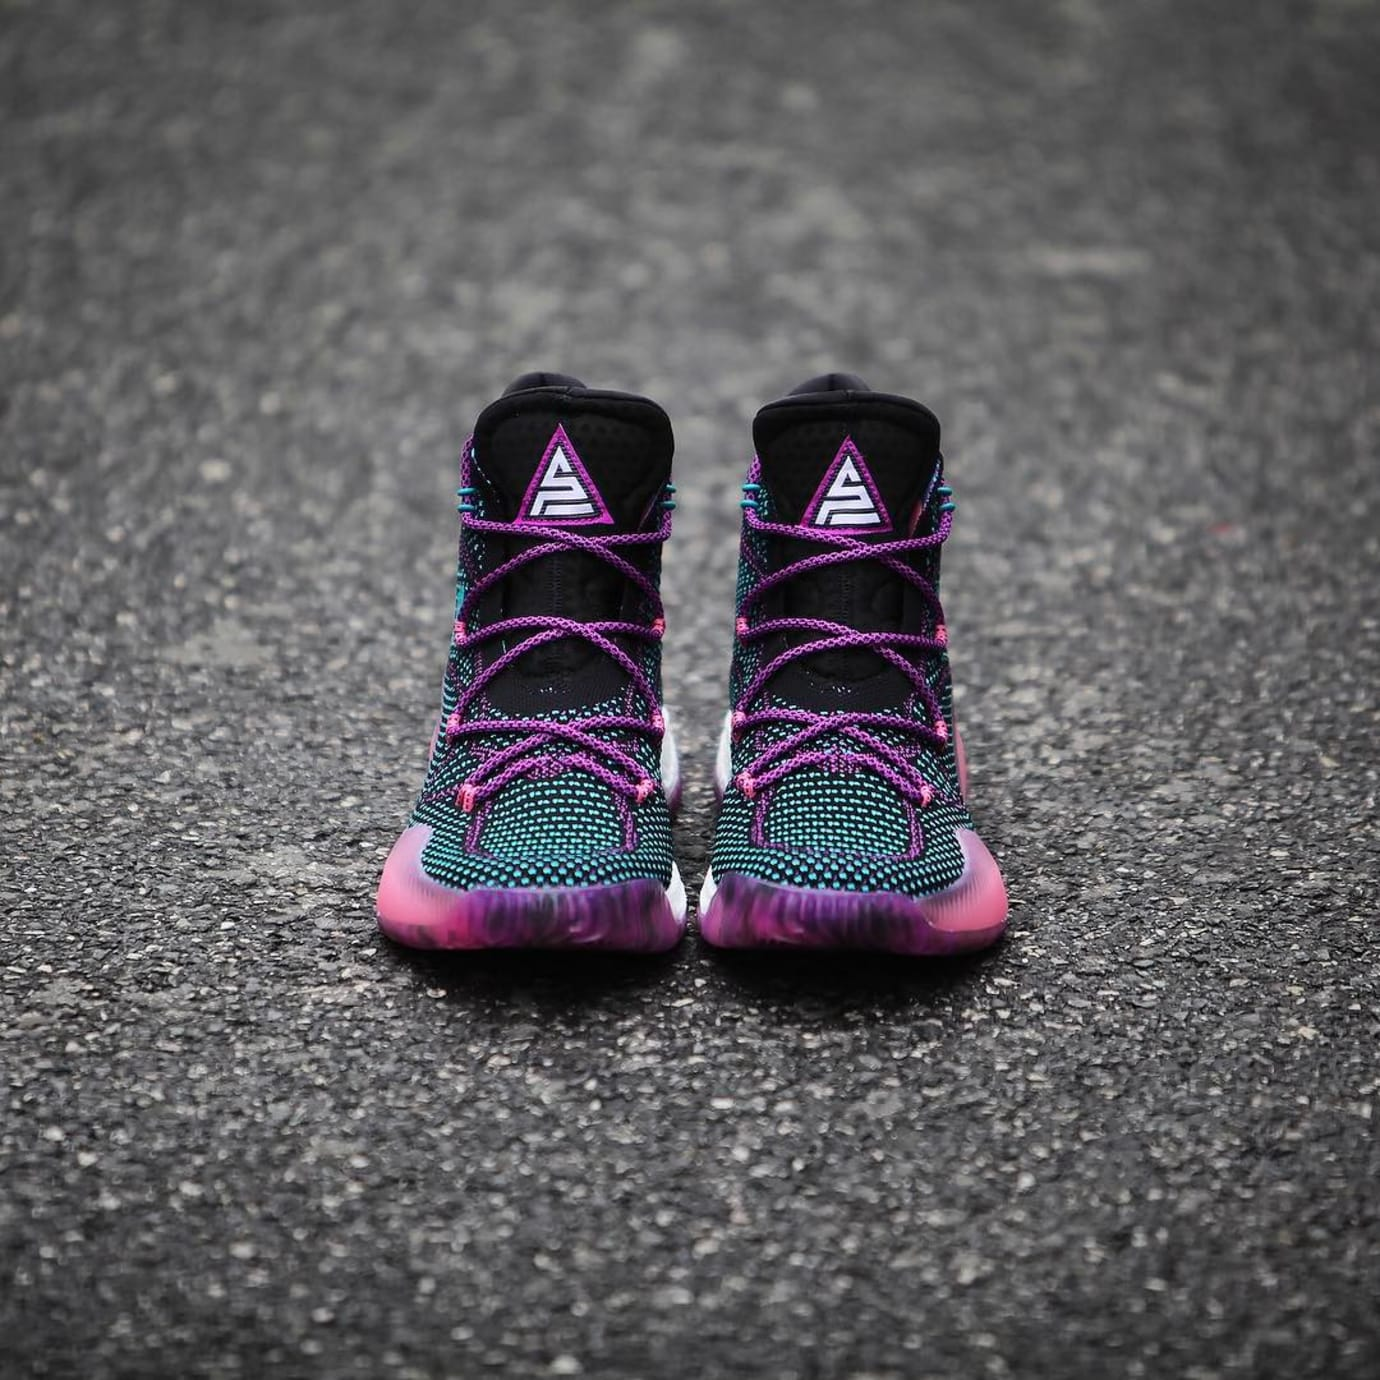 Swaggy P Adidas Crazy Explosive Black Pink PE (6)